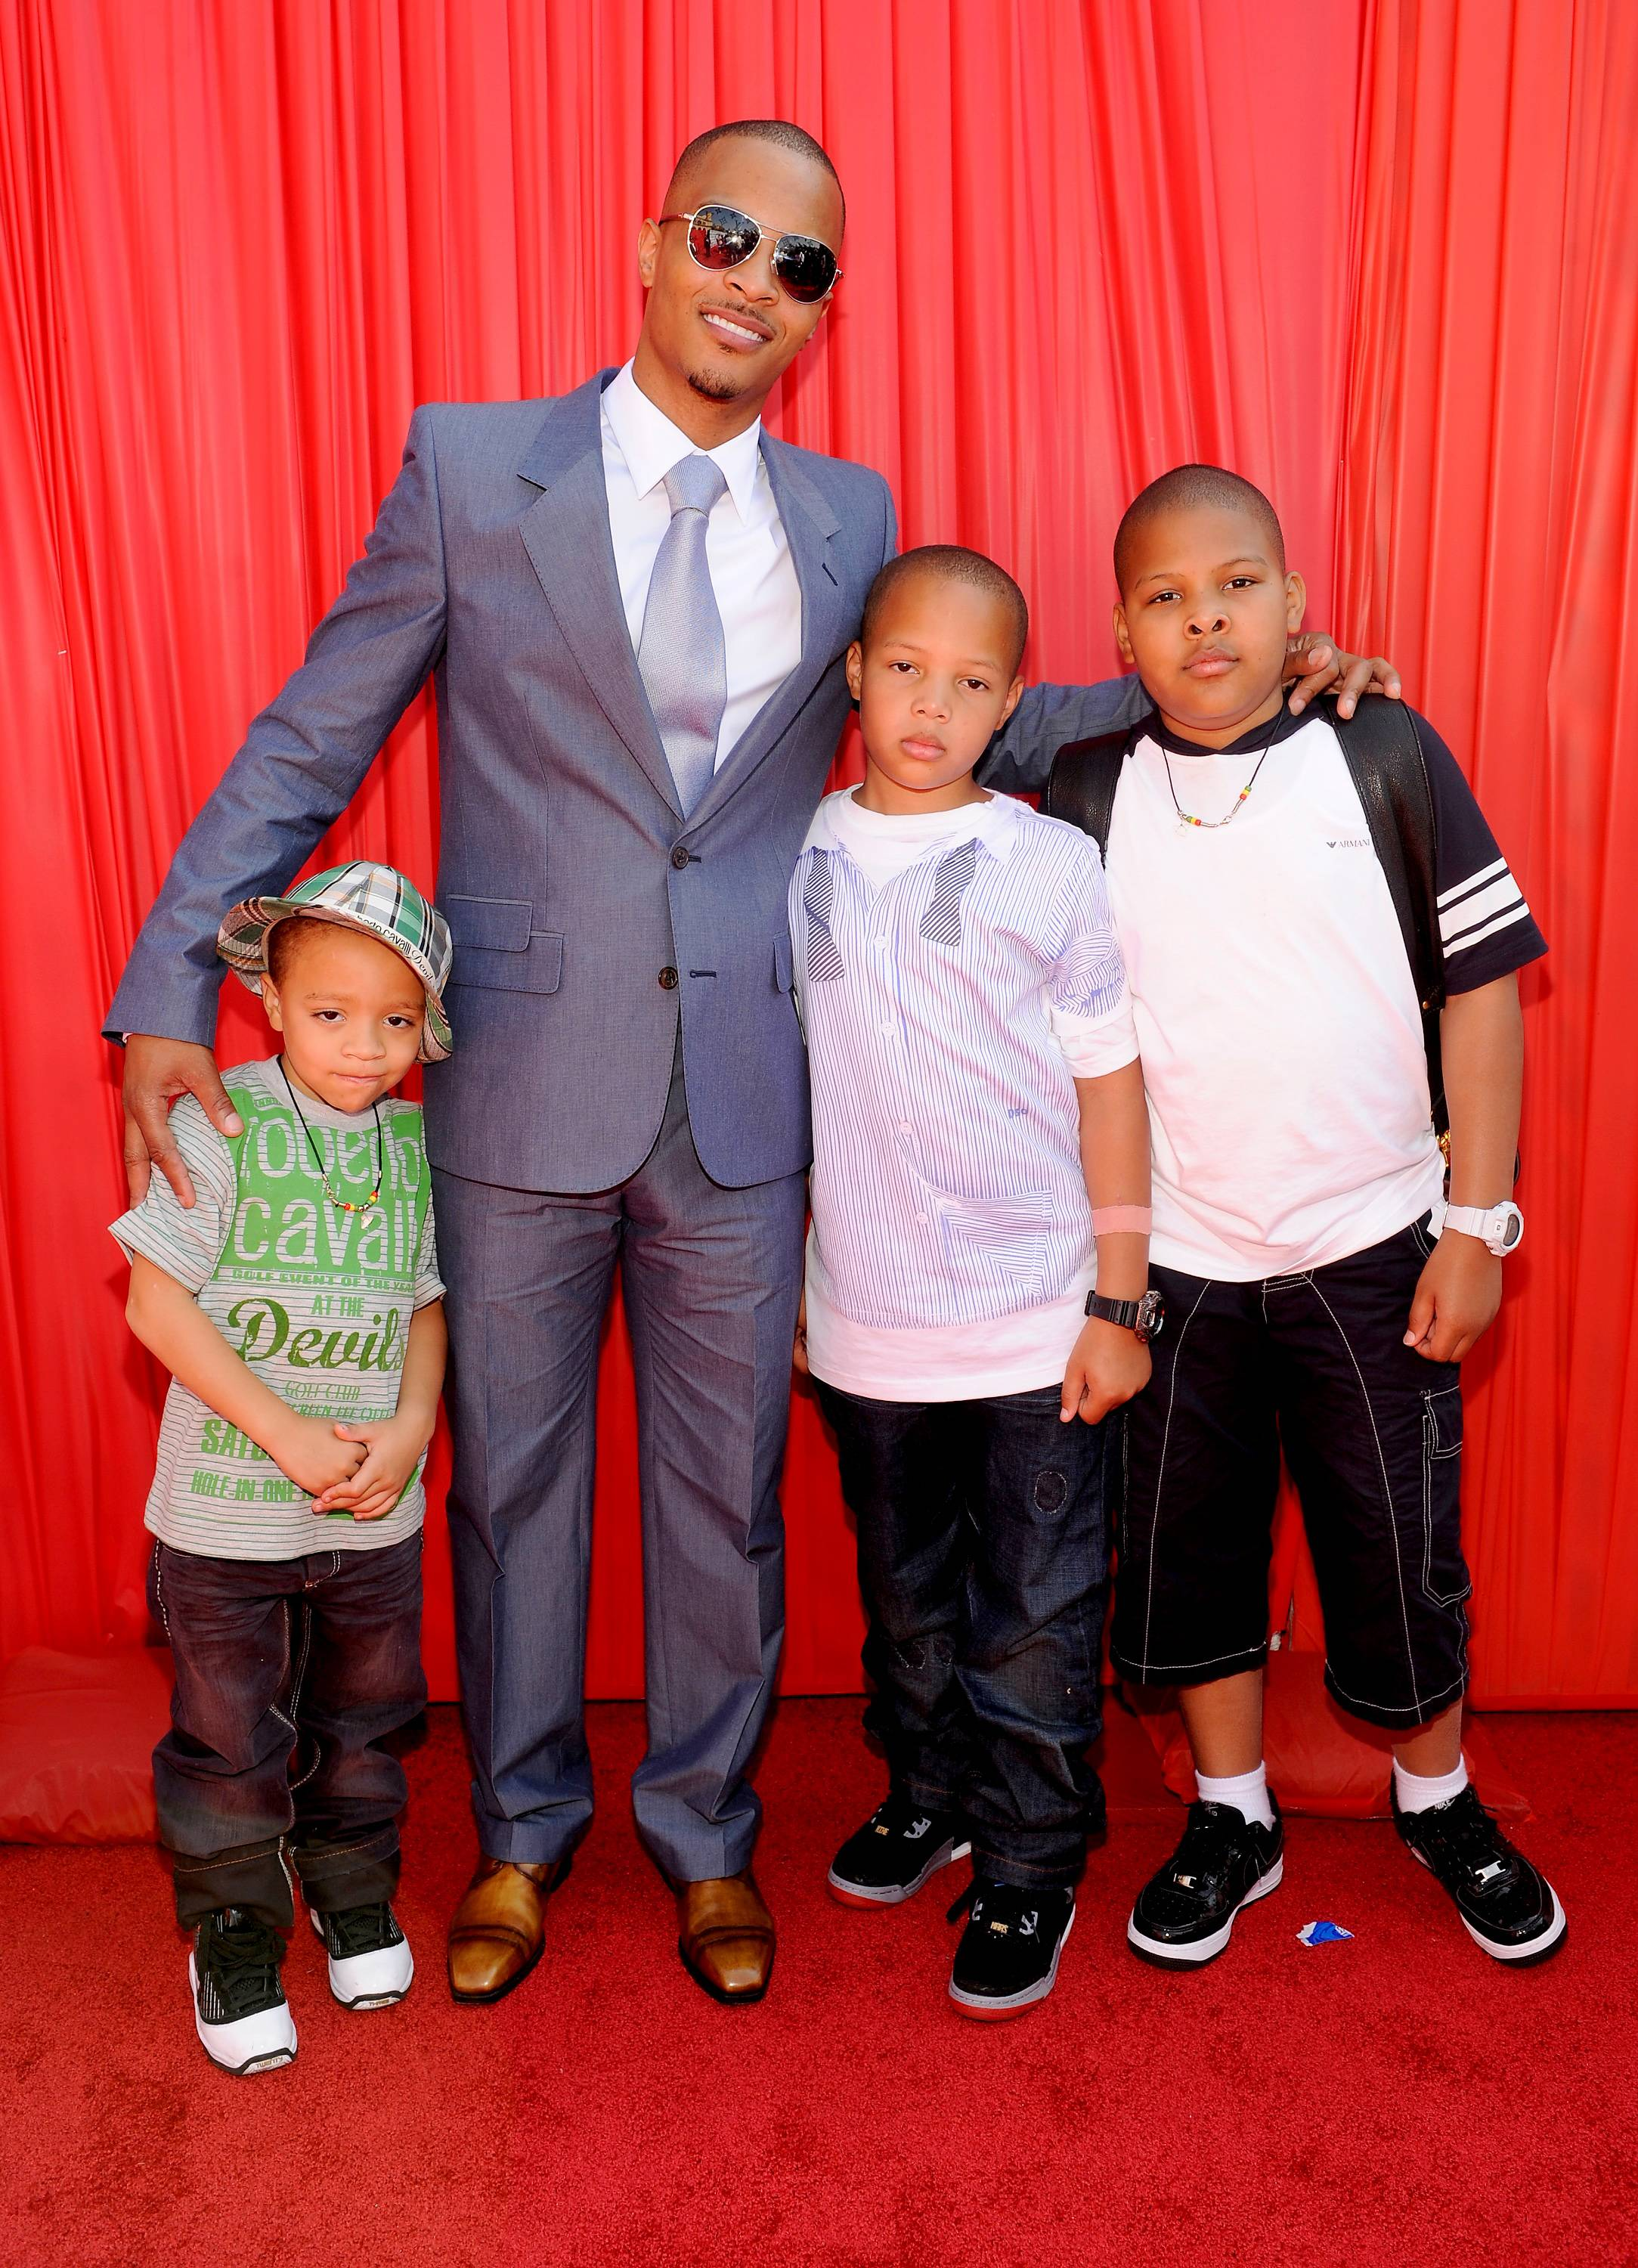 """T.I.  - T.I. says he?s teaching his six kids to """"be passionate about the things that move you and follow that passion. I am trying to teach them with great reward comes great responsibility. The more you have the more you are required, obligated to do. With no struggle, there is no progress. That's what I am trying to teach them.""""(Photo: Frank Micelotta/PictureGroup)"""